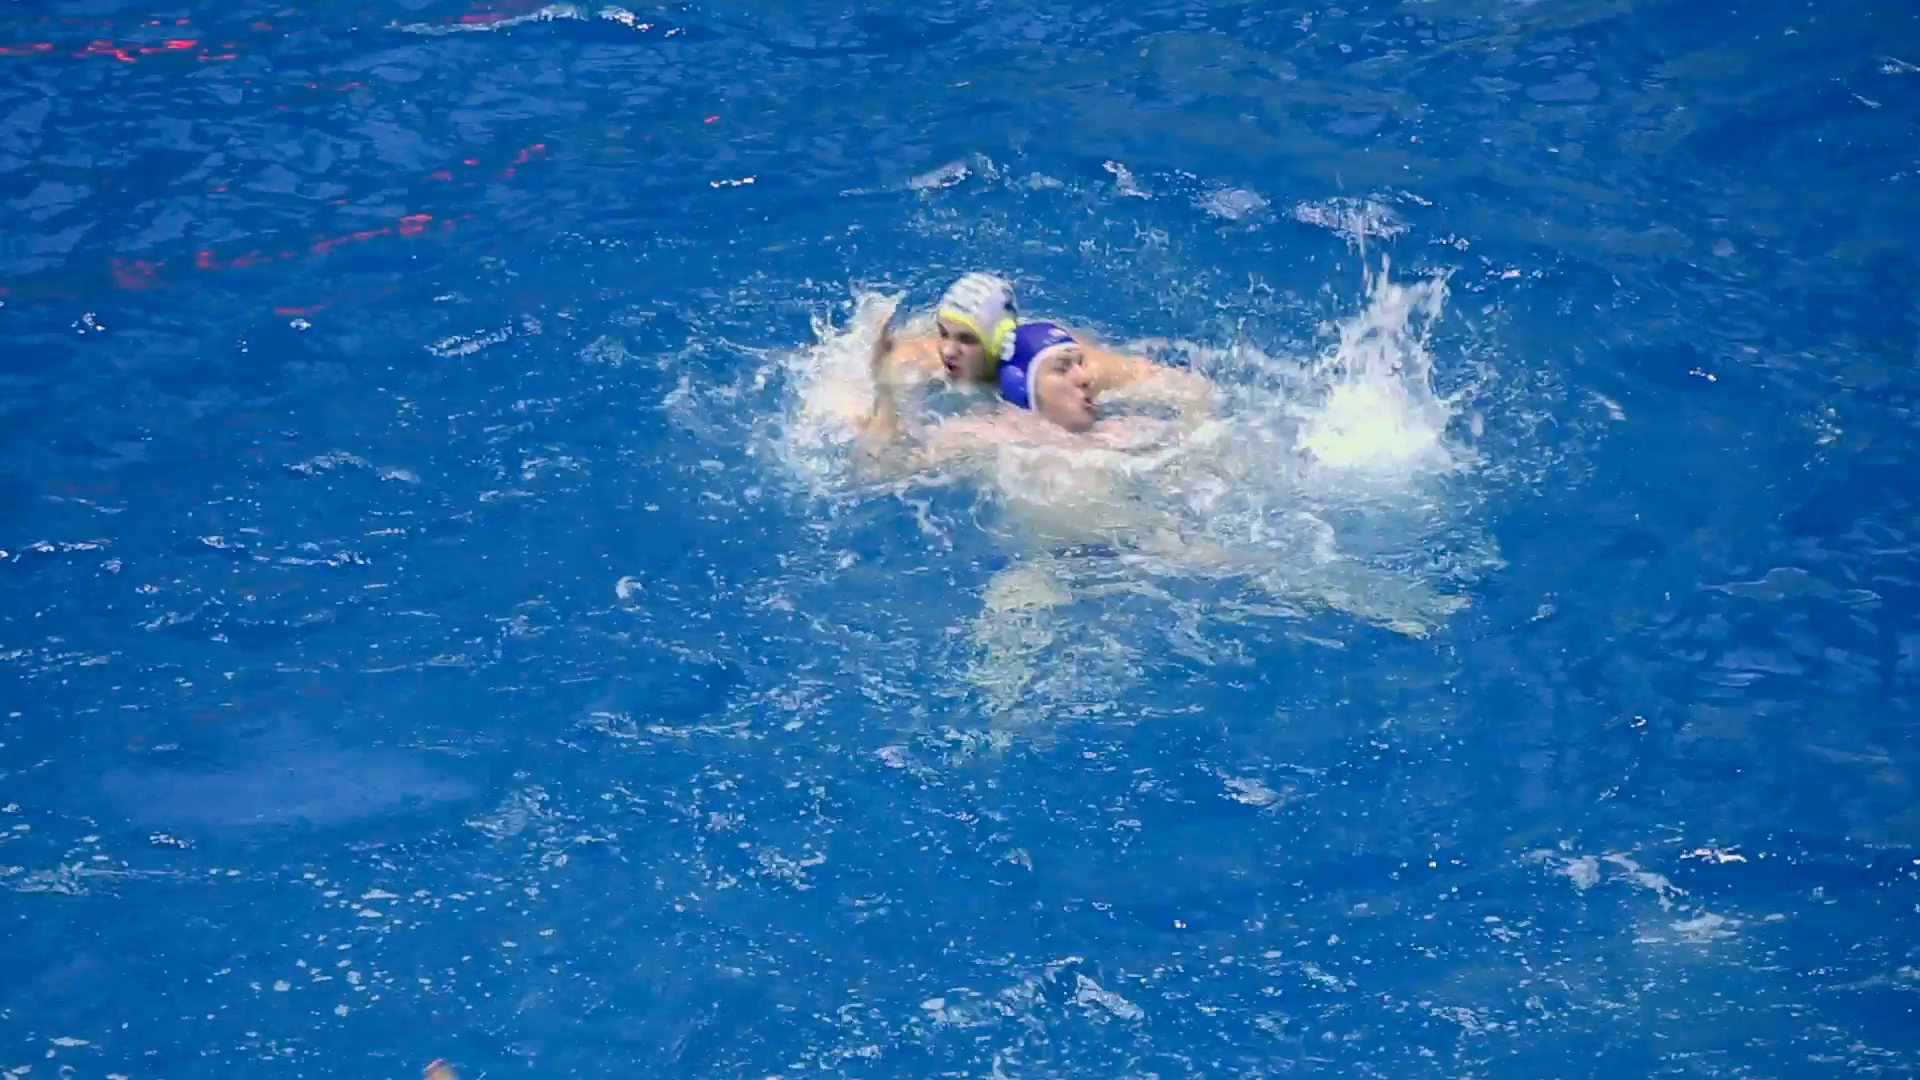 Water Polo Png Hd - Water Polo Player Struggles And Score Goal During Game In Basin Stock Video Footage   Videoblocks, Transparent background PNG HD thumbnail